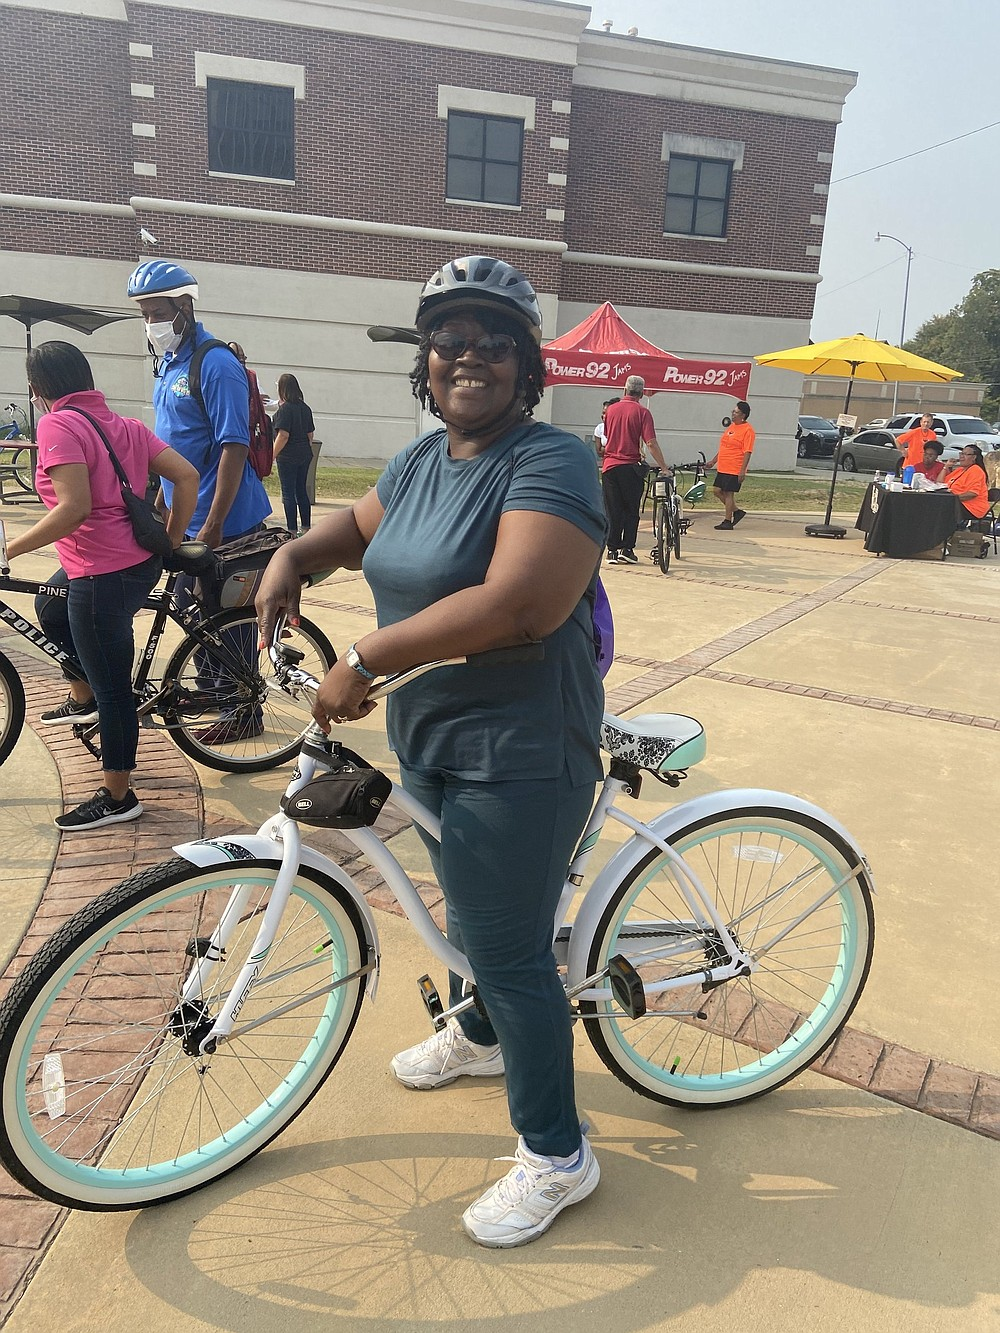 Altheimer Mayor Mayor Zola Hudson gets ready for Saturday morning's Tour de Bluff ride. (Special to The Commercial/Deborah Horn)